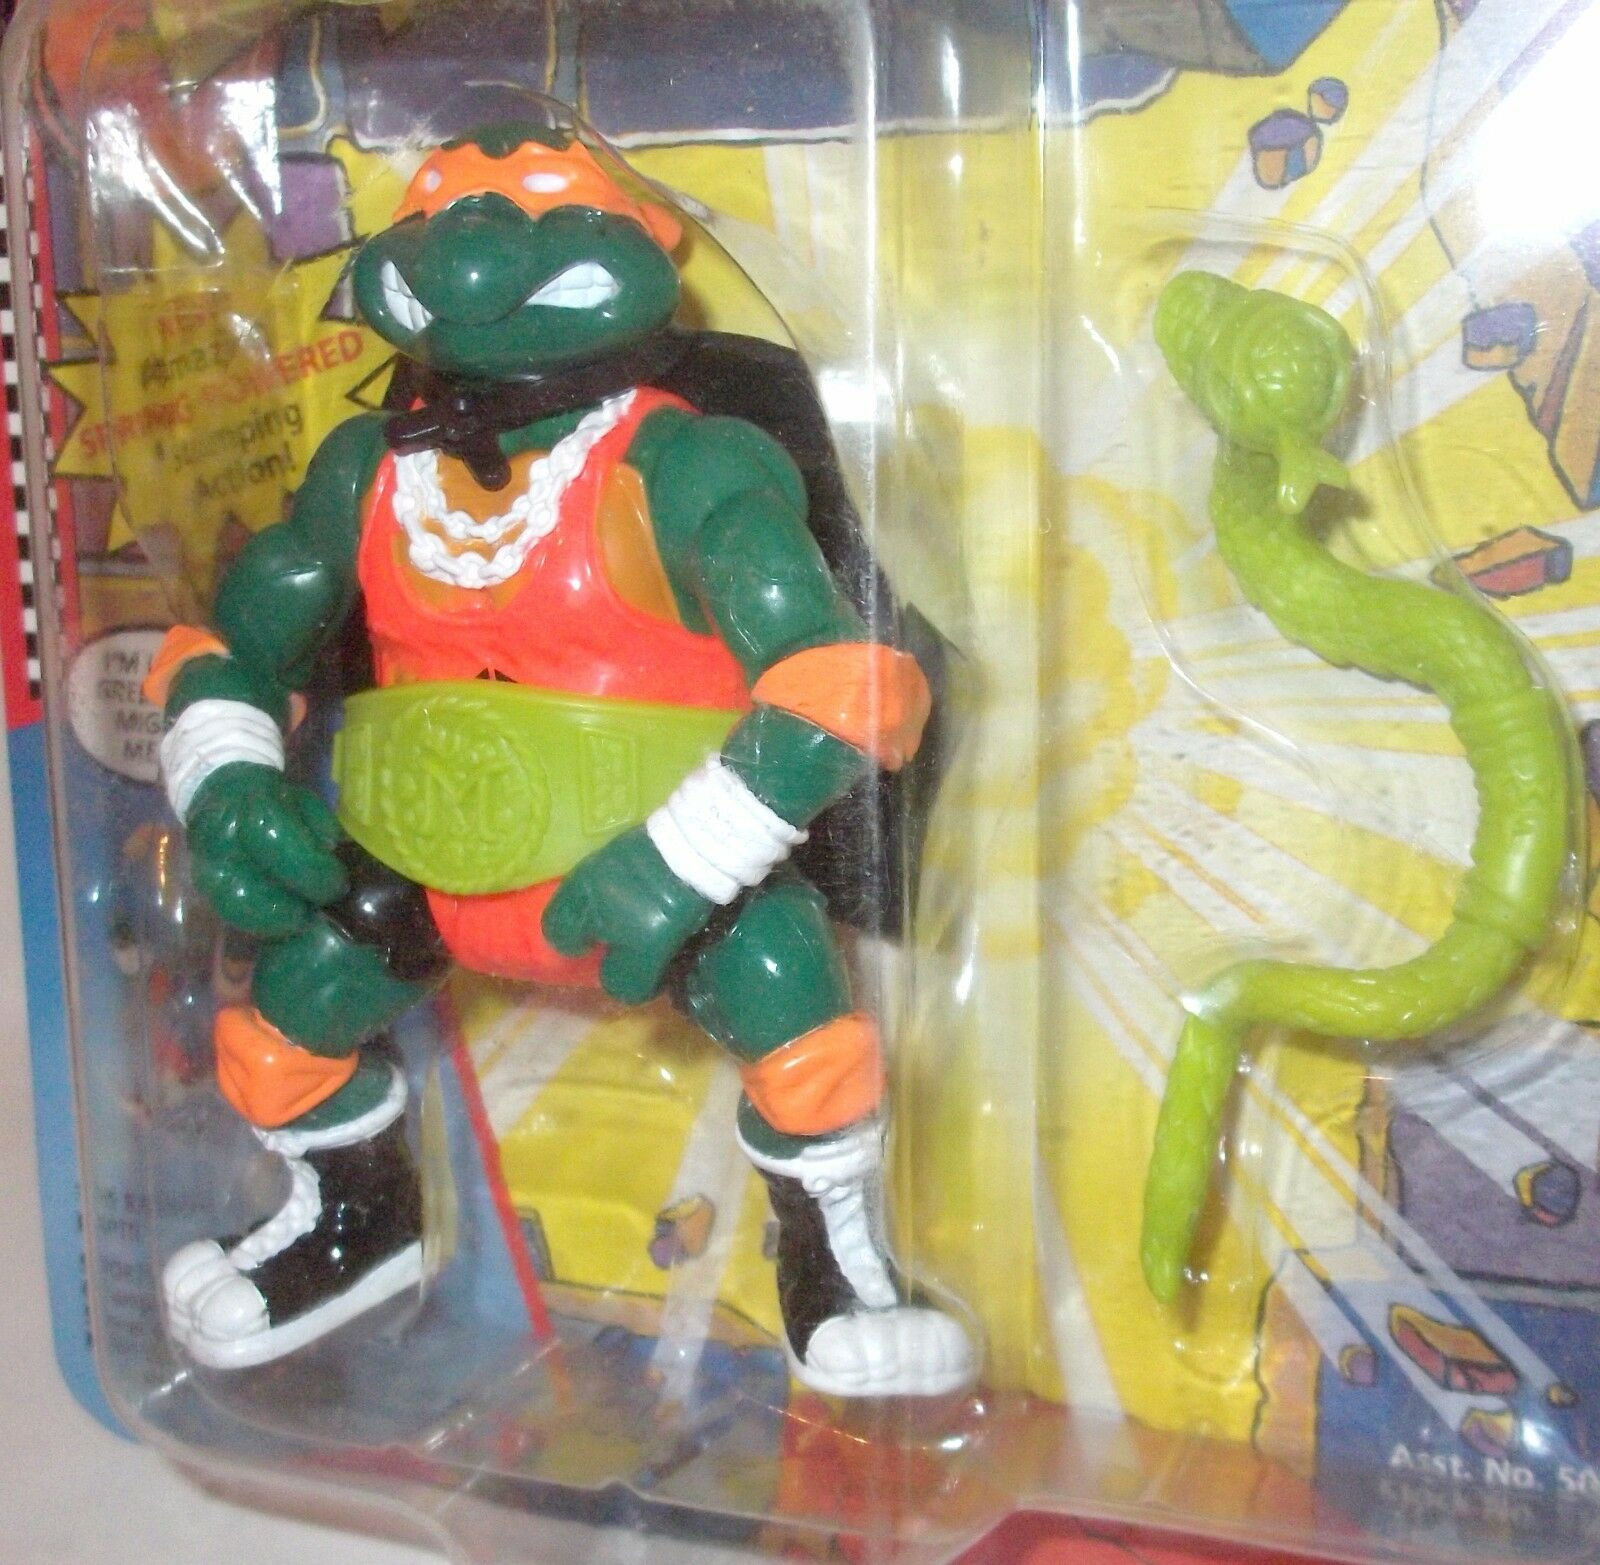 TMNT SHELL SLAMMIN' MIKE '91 MOC Ninja Turtles figure Rare Orange TIGHTS BELT ON